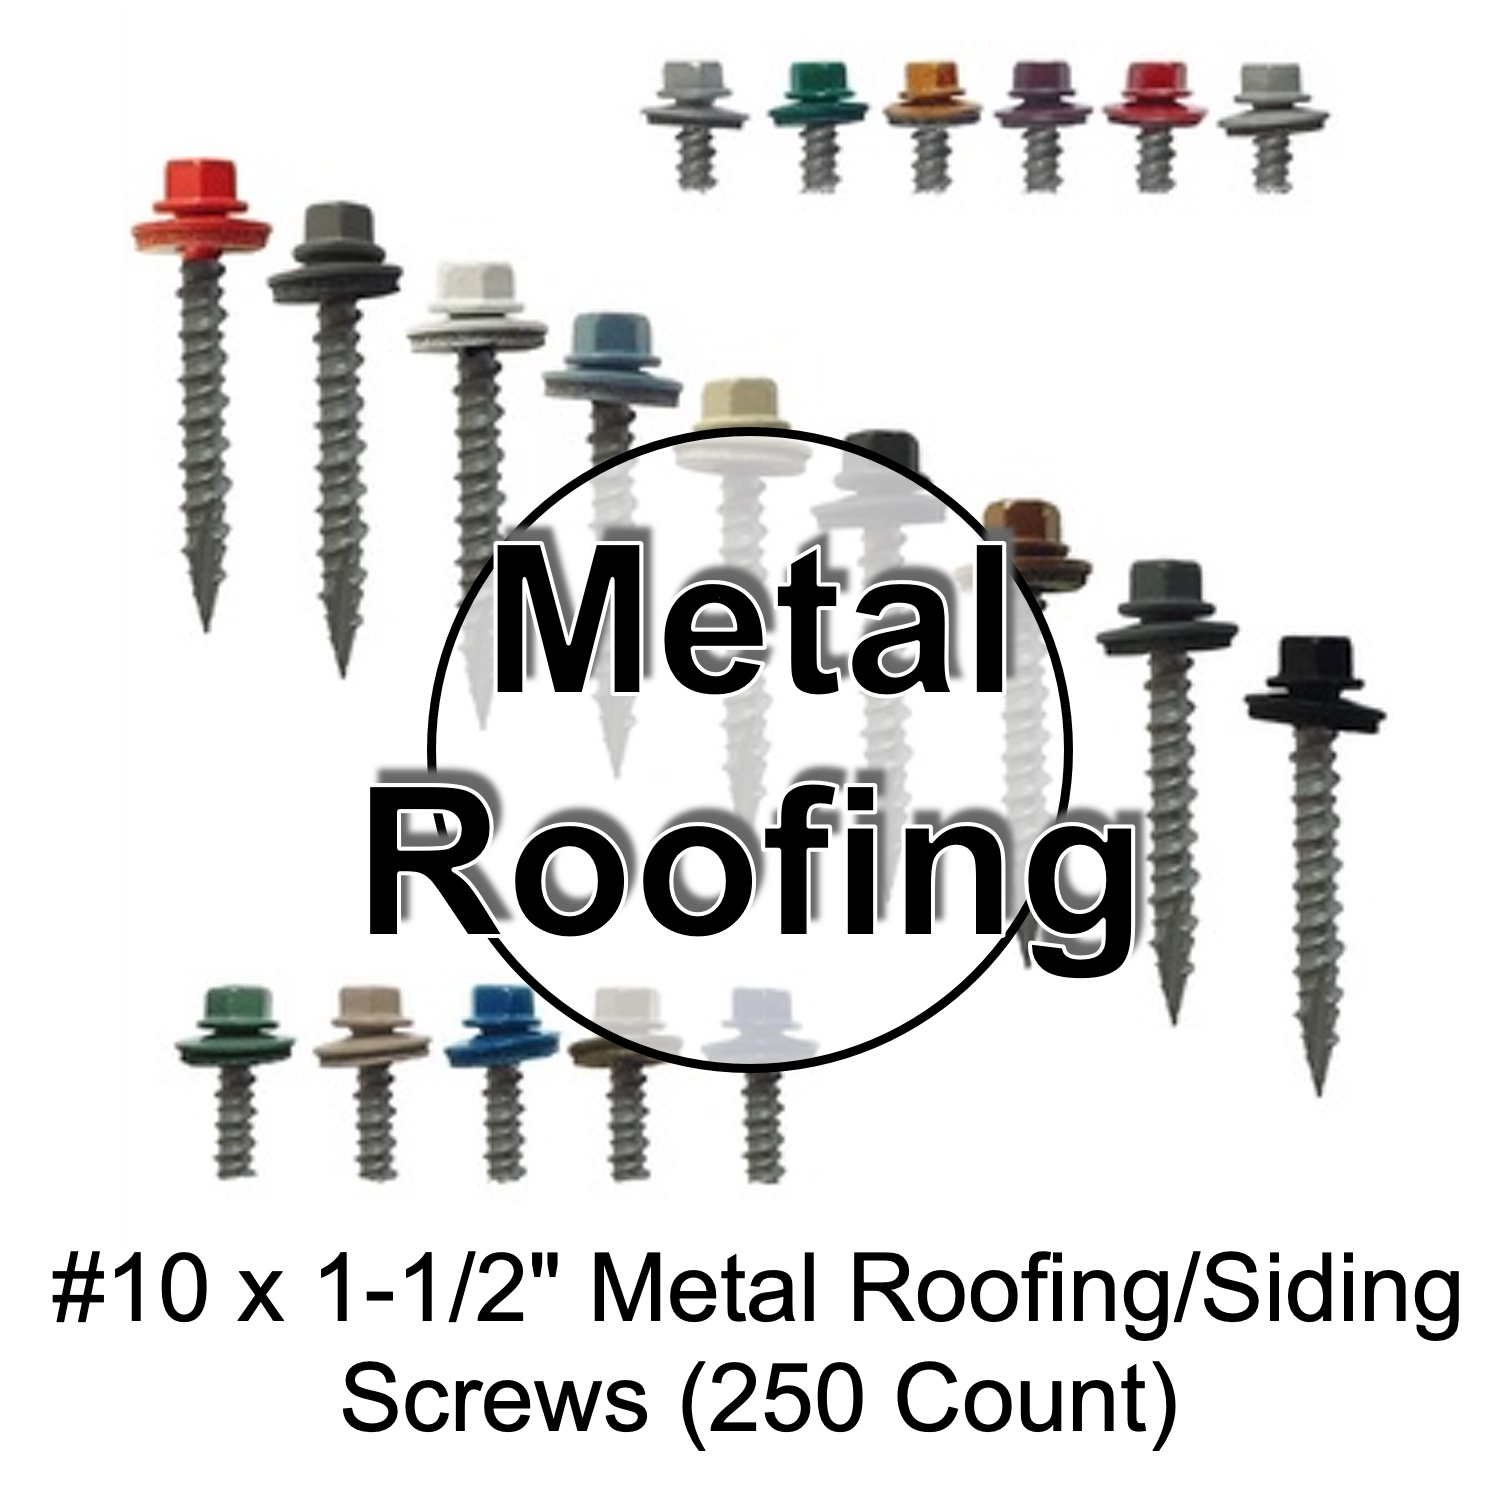 Colored Sheet Metal Roofing Screws Corrugated Metal Roofing Siding Screws 1 1 Inch Roofing Screws